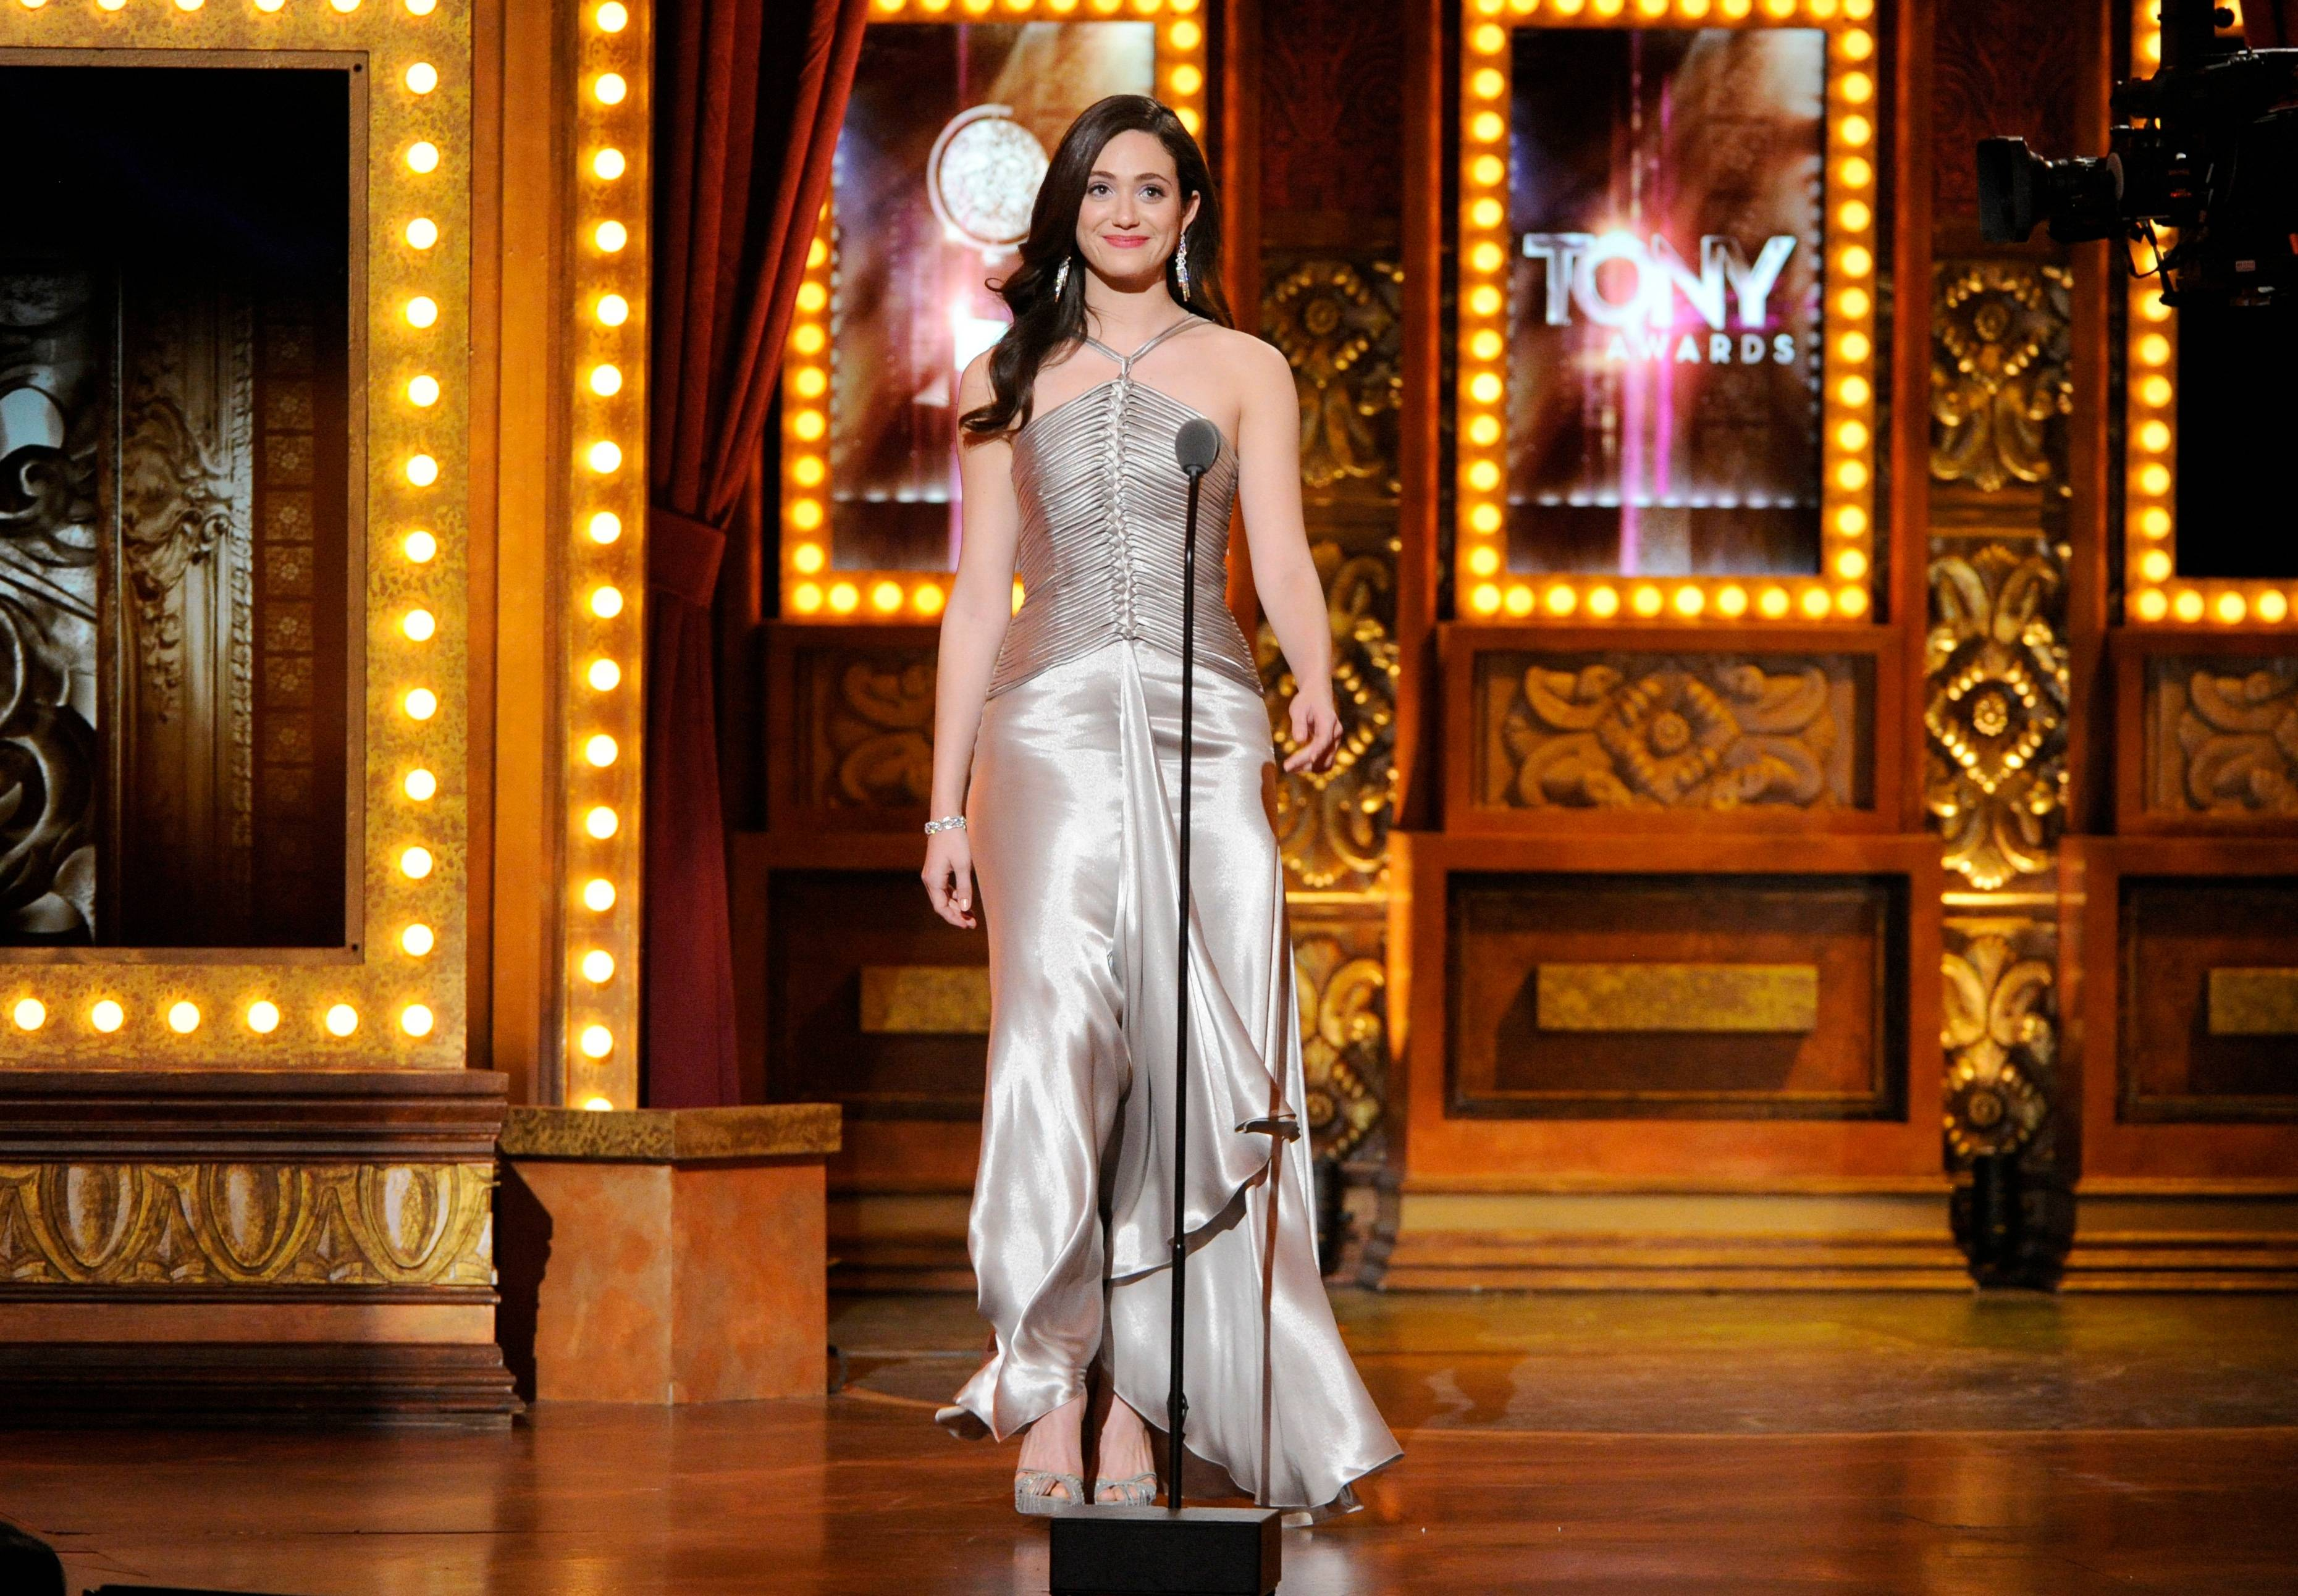 Emmy Rossum spekas onstage at the 68th annual Tony Awards at Radio City Music Hall on Sunday.